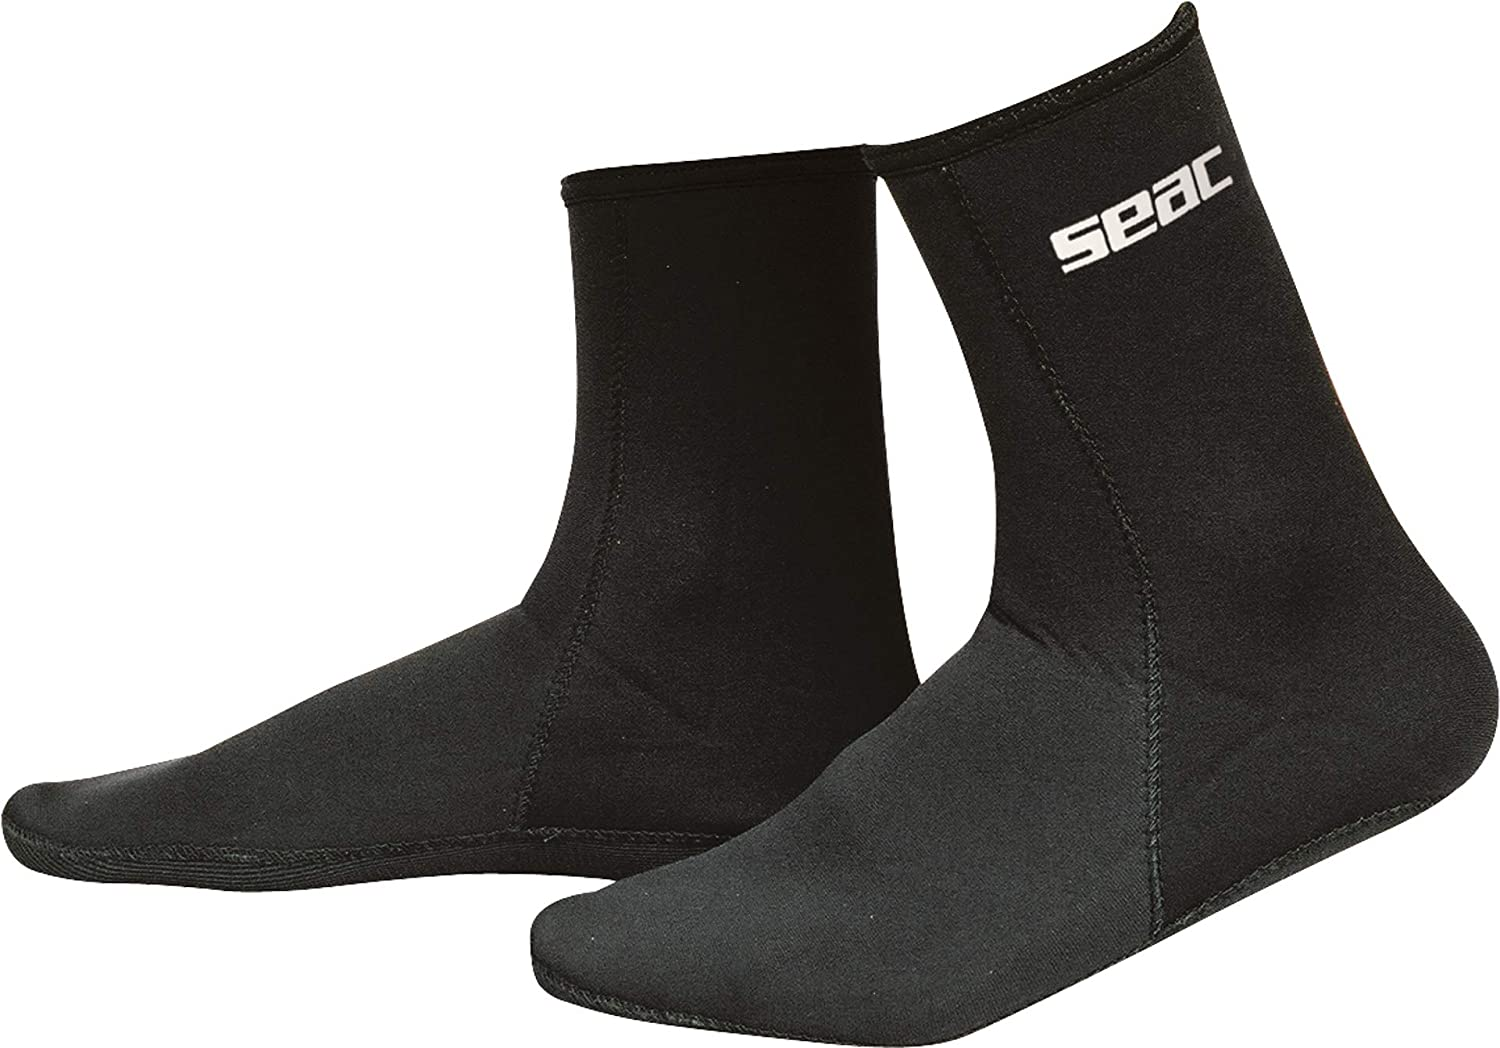 Limited time trial price Sales of SALE items from new works SEAC Standard 2.5 mm Boot Thick Neoprene